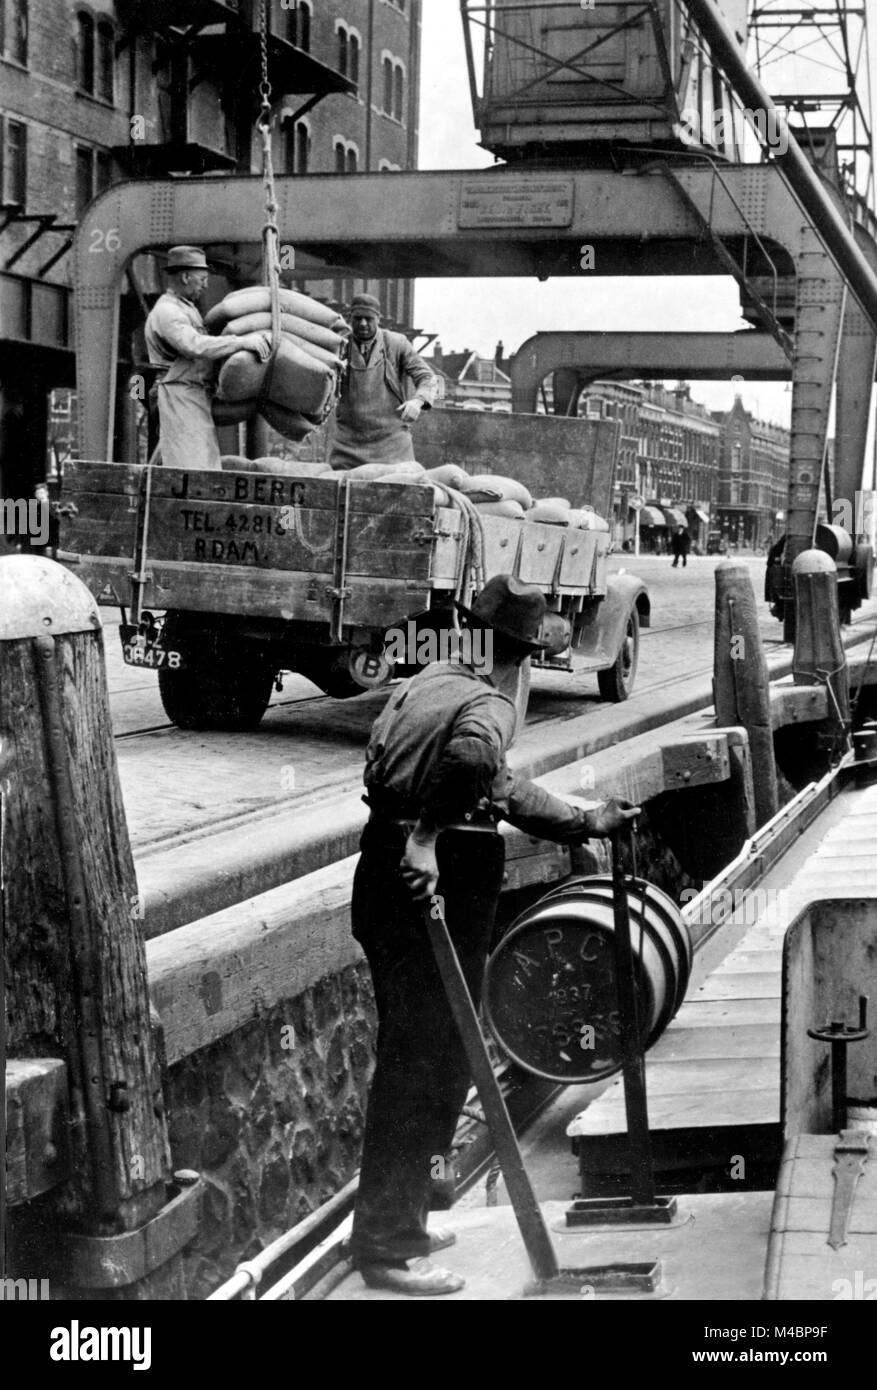 Dock worker,Unloading of a ship,1950s,exact location unknown,Germany - Stock Image